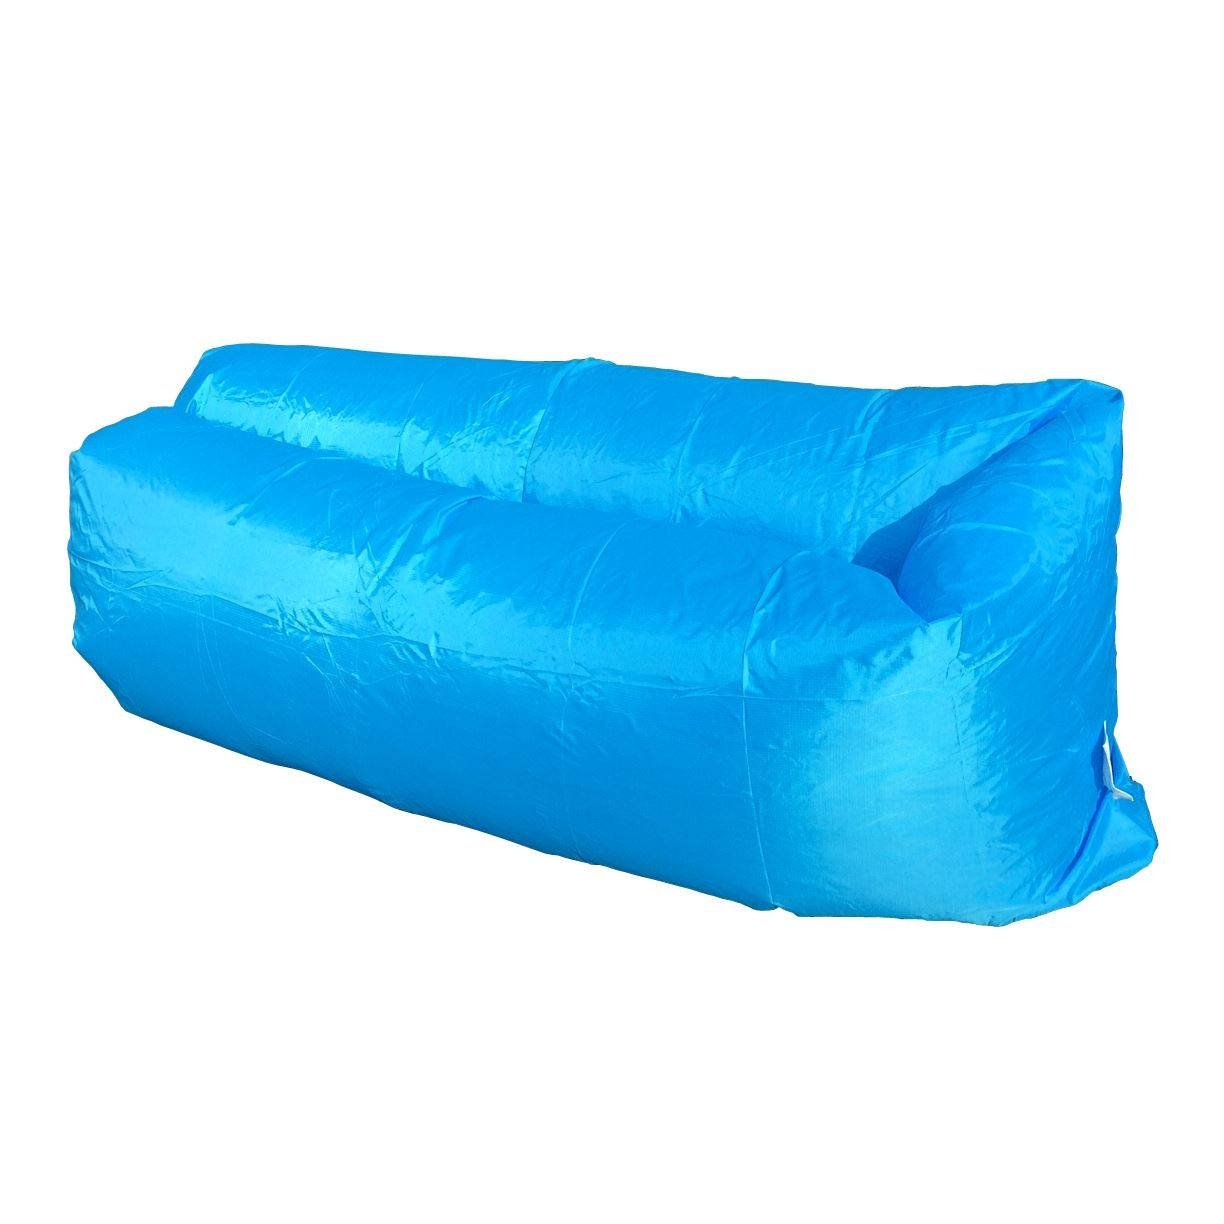 Inflatable Sofa Chair Air Bed Luxury Seat Camping Festival Holiday Within Inflatable Sofas And Chairs (View 7 of 15)